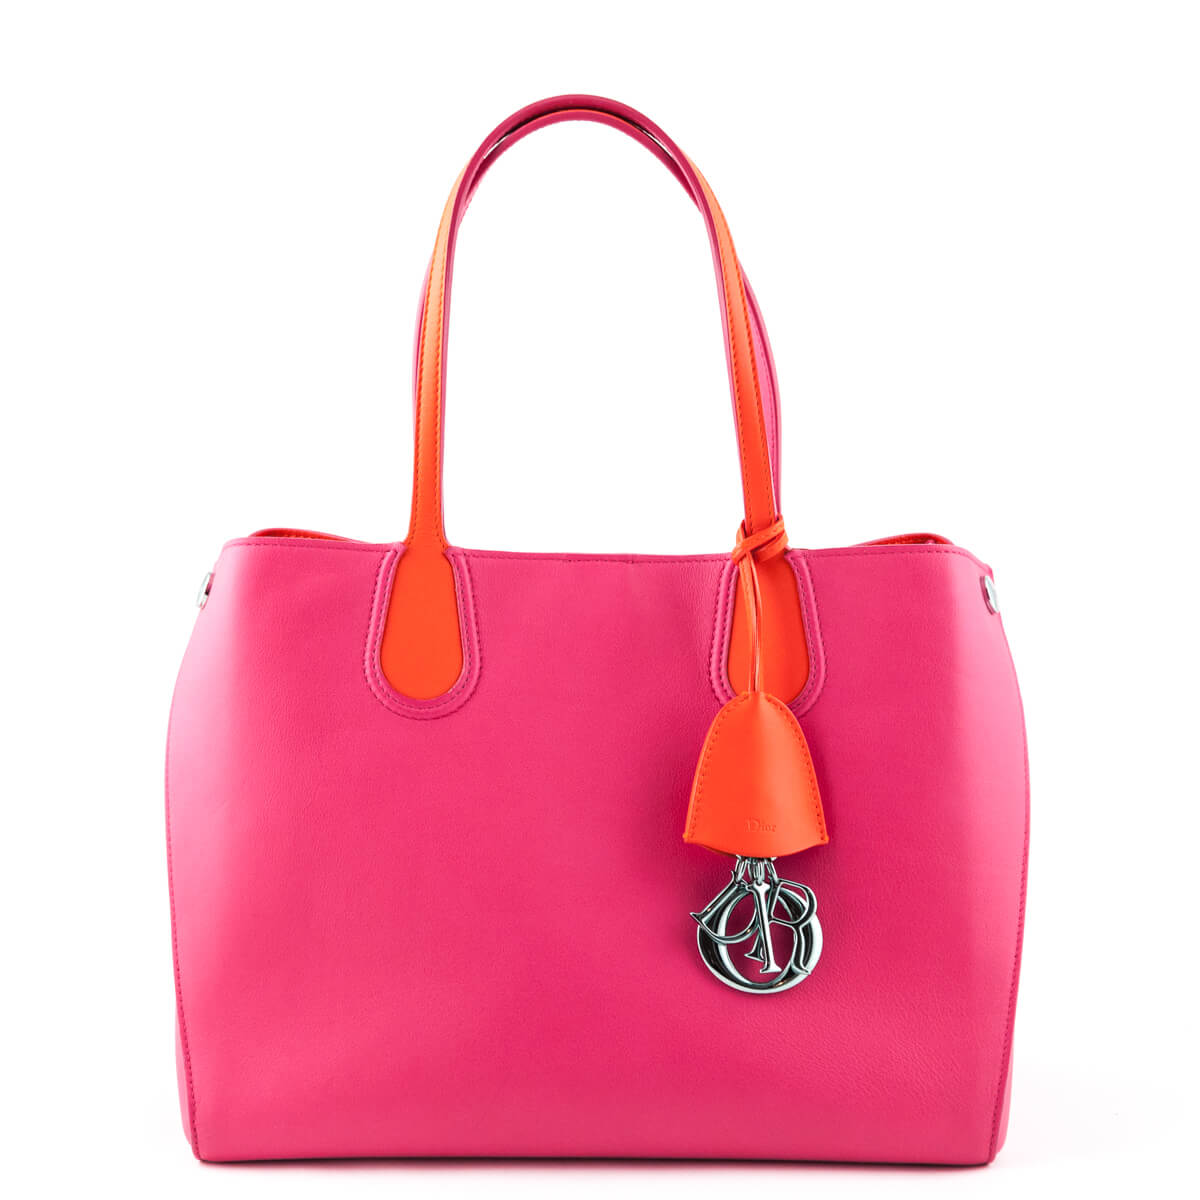 9aa87cefb Dior Fuchsia Small Dior Addict Shopping Tote Bag - LOVE that BAG - Preowned  Authentic Designer ...